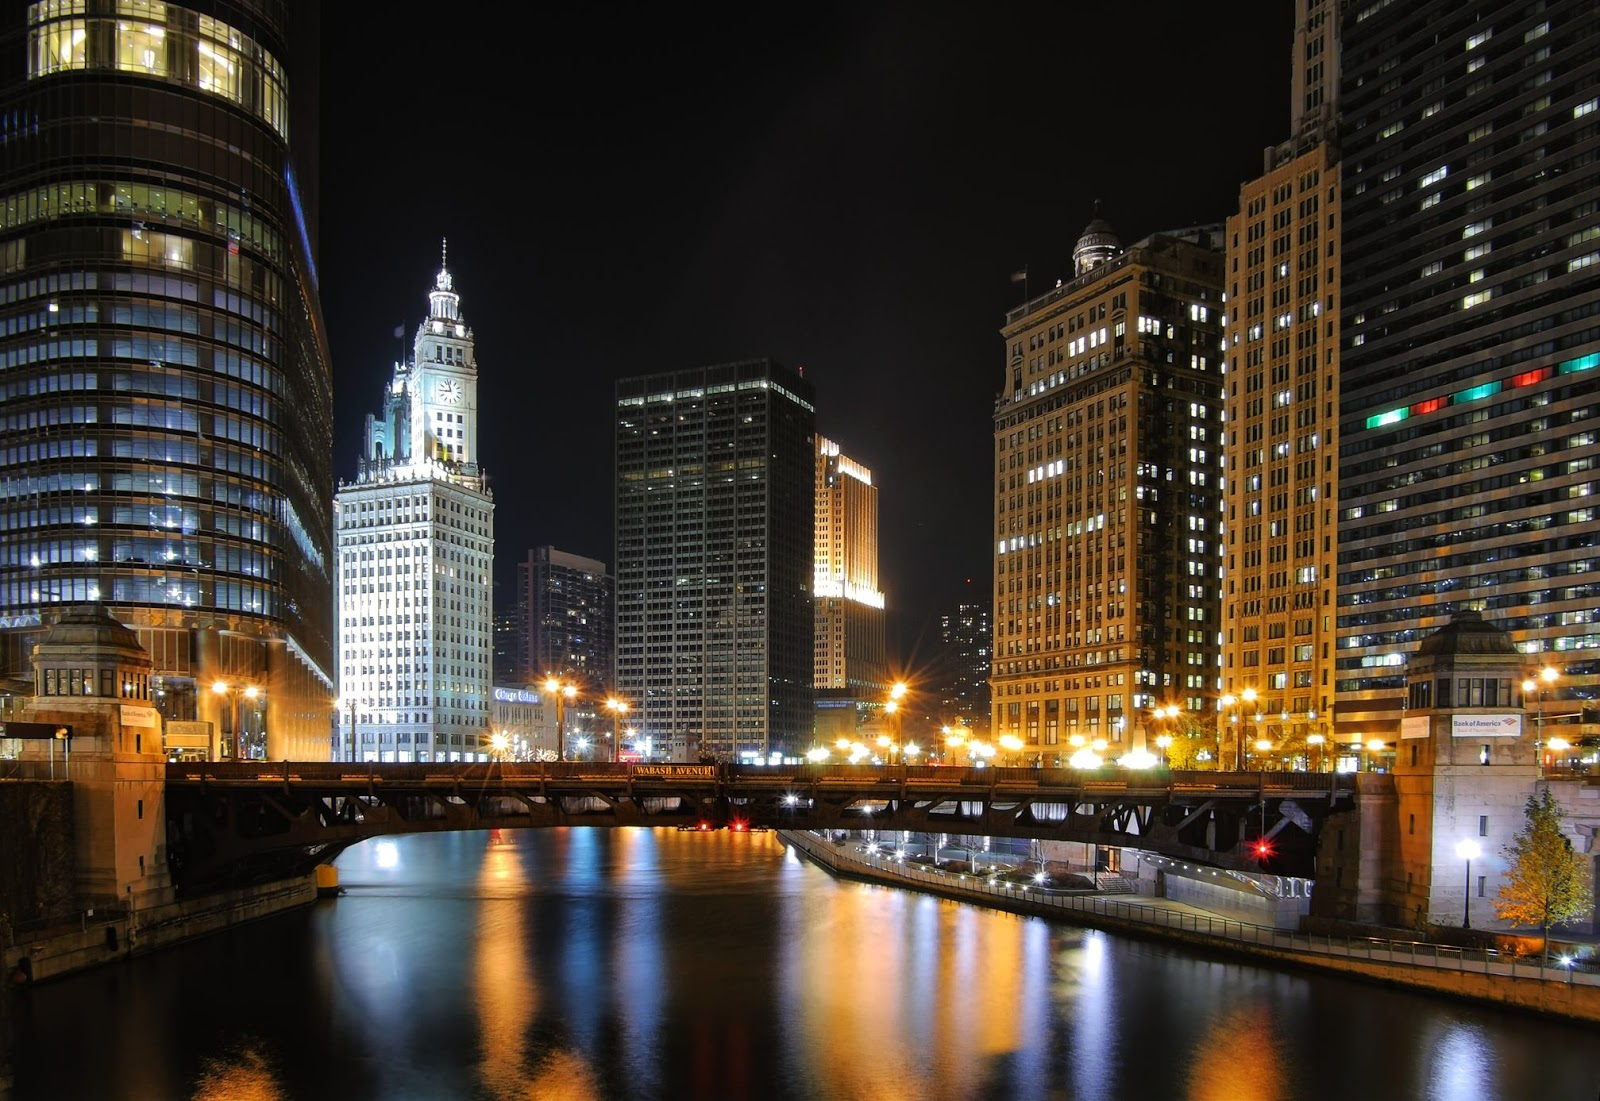 Maintaining Chicago's Magical Spirit